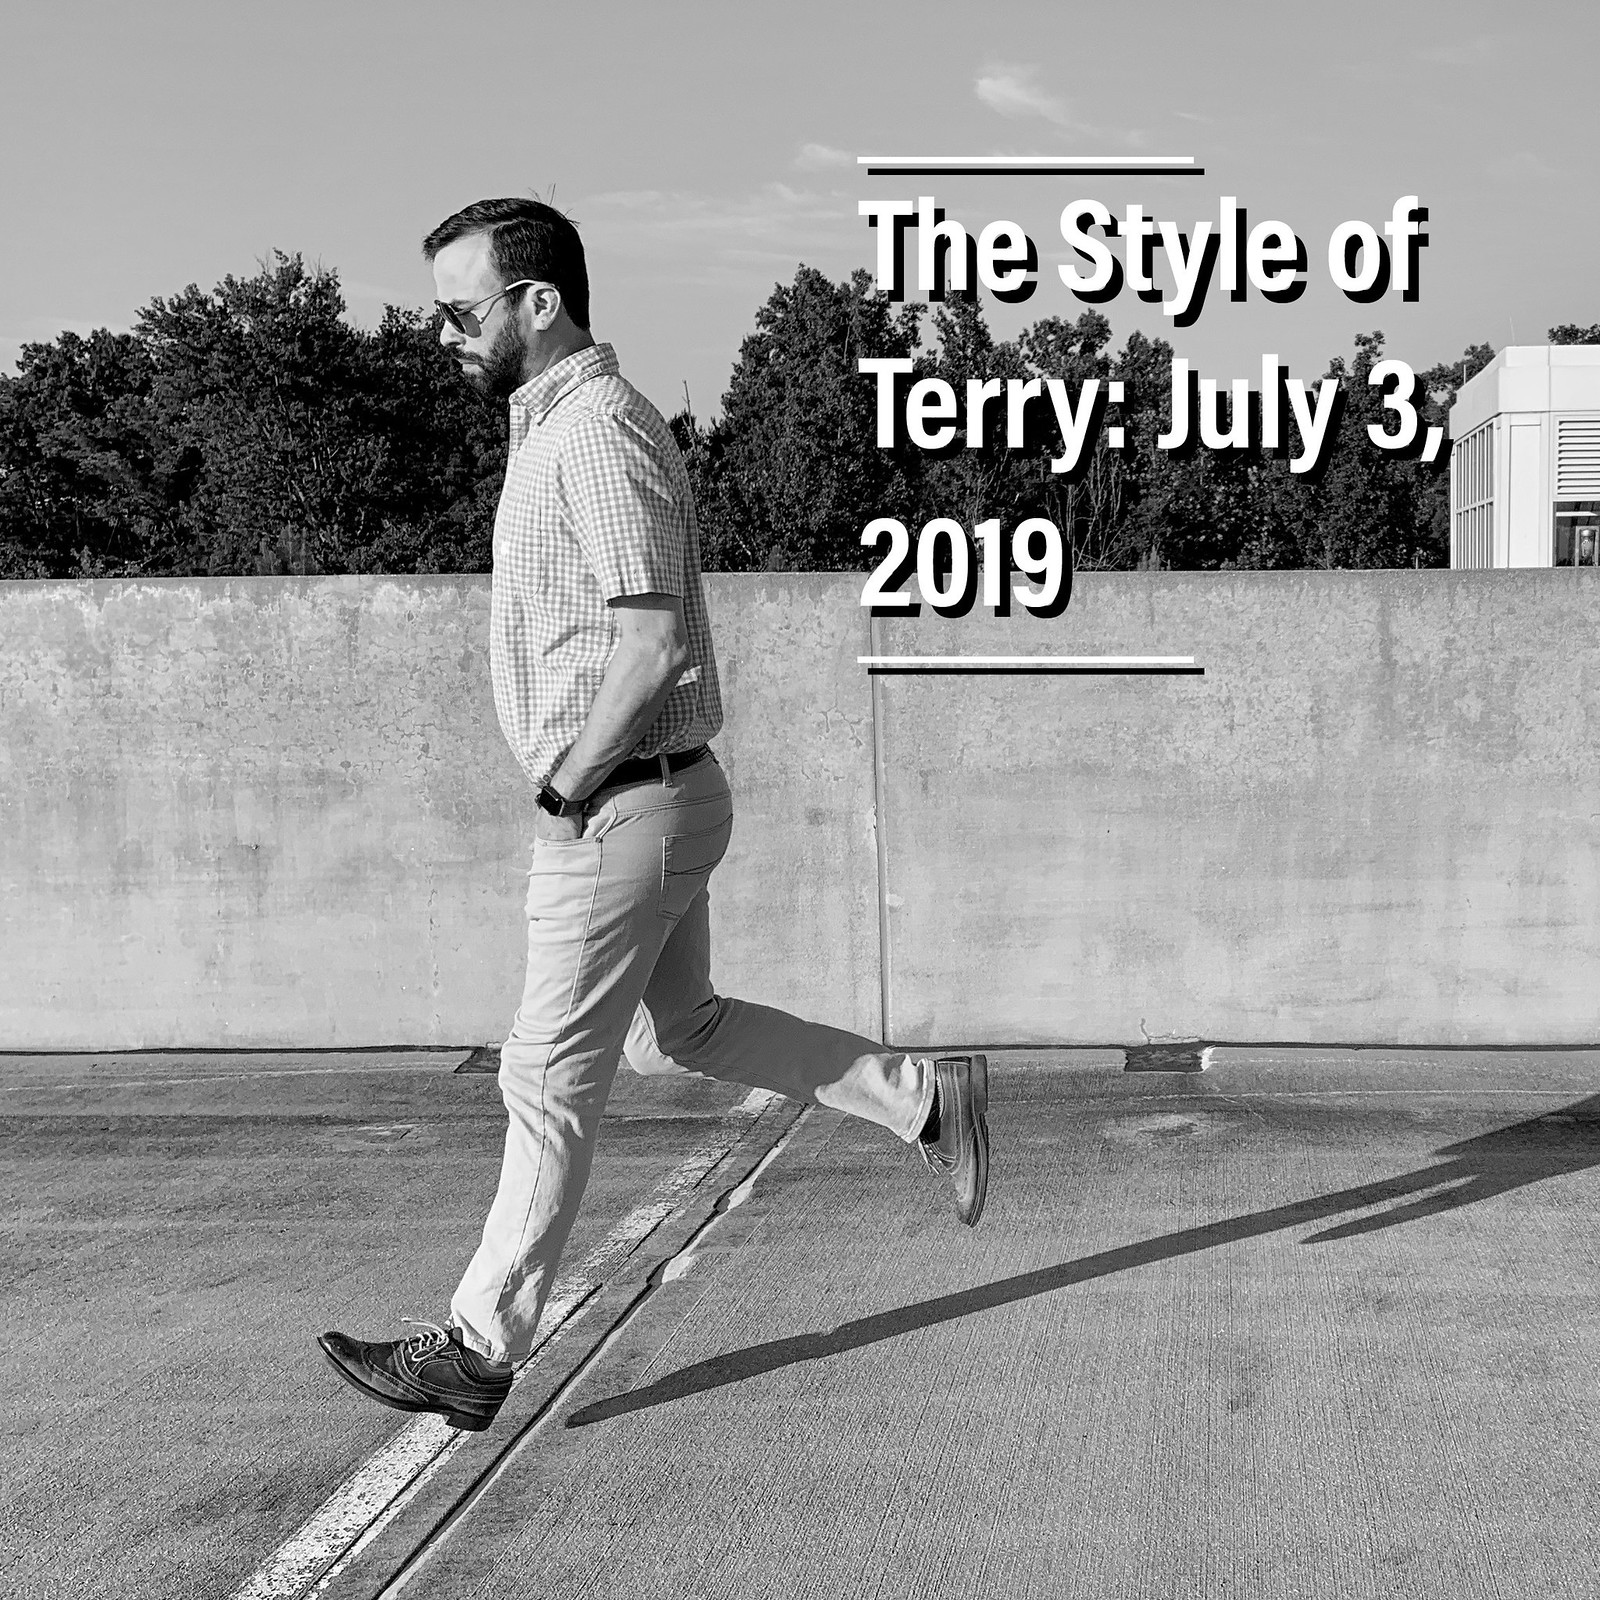 The Style of Terry: 7.3.19